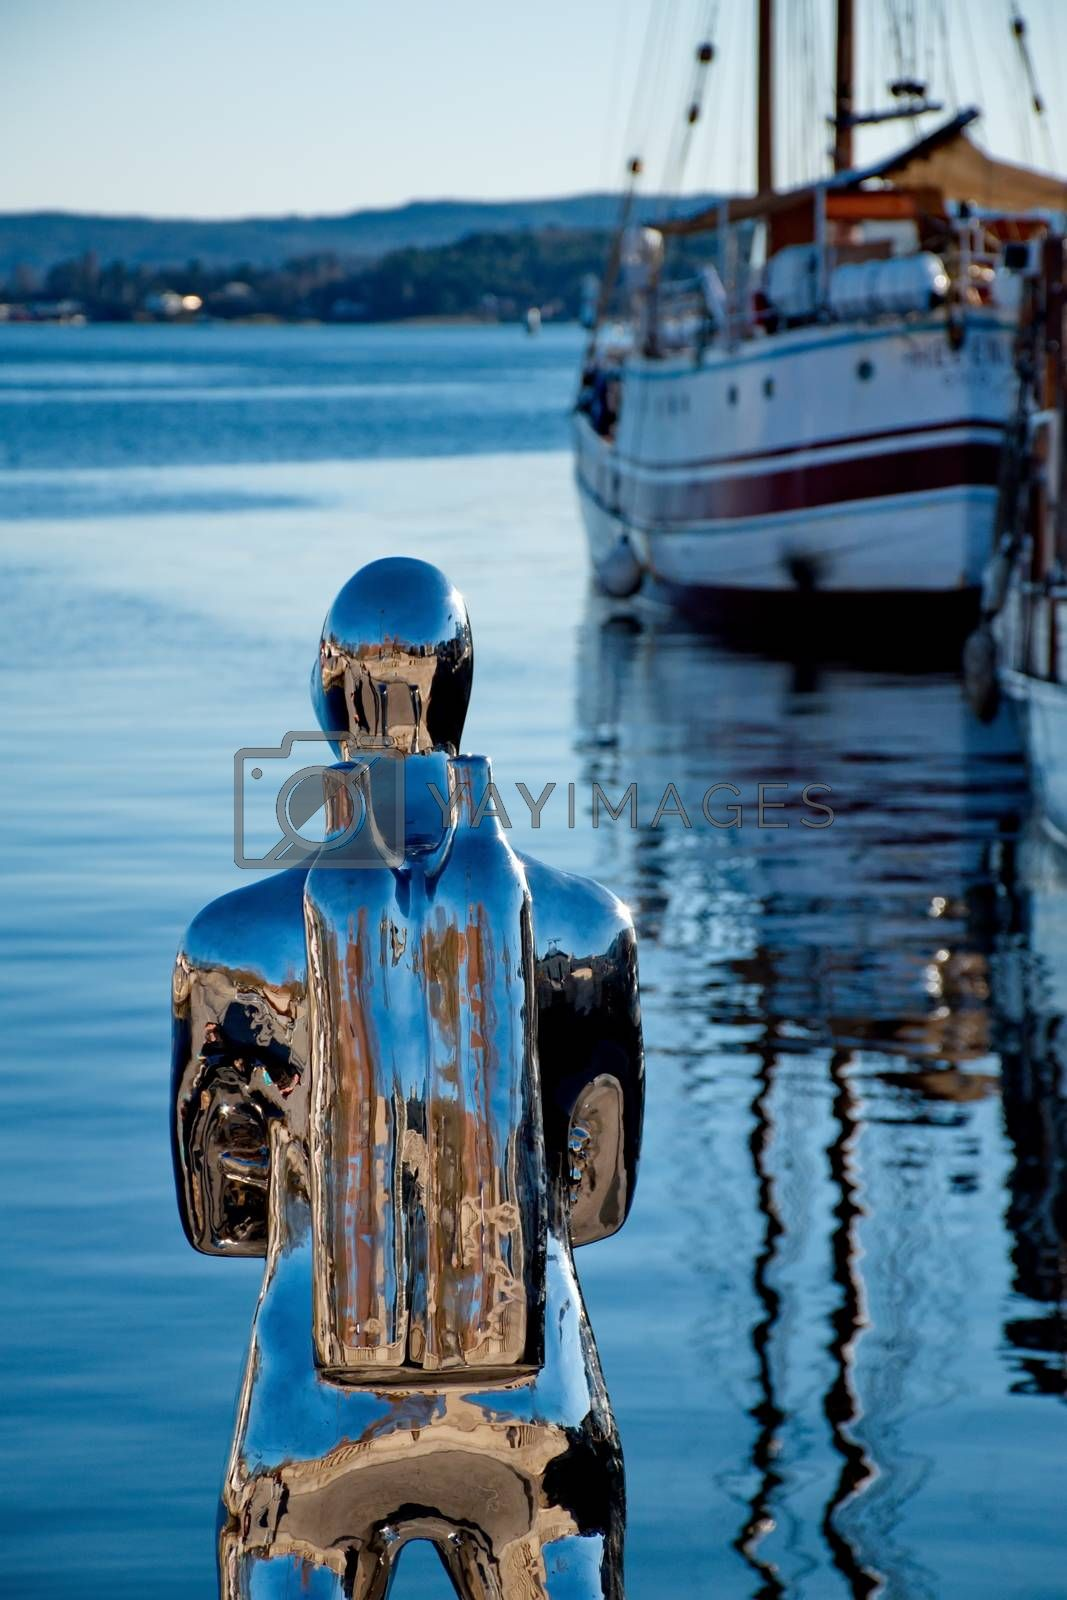 OSLO - MARCH 21: Contemporary scuplture of a diverr in Oslo harbour